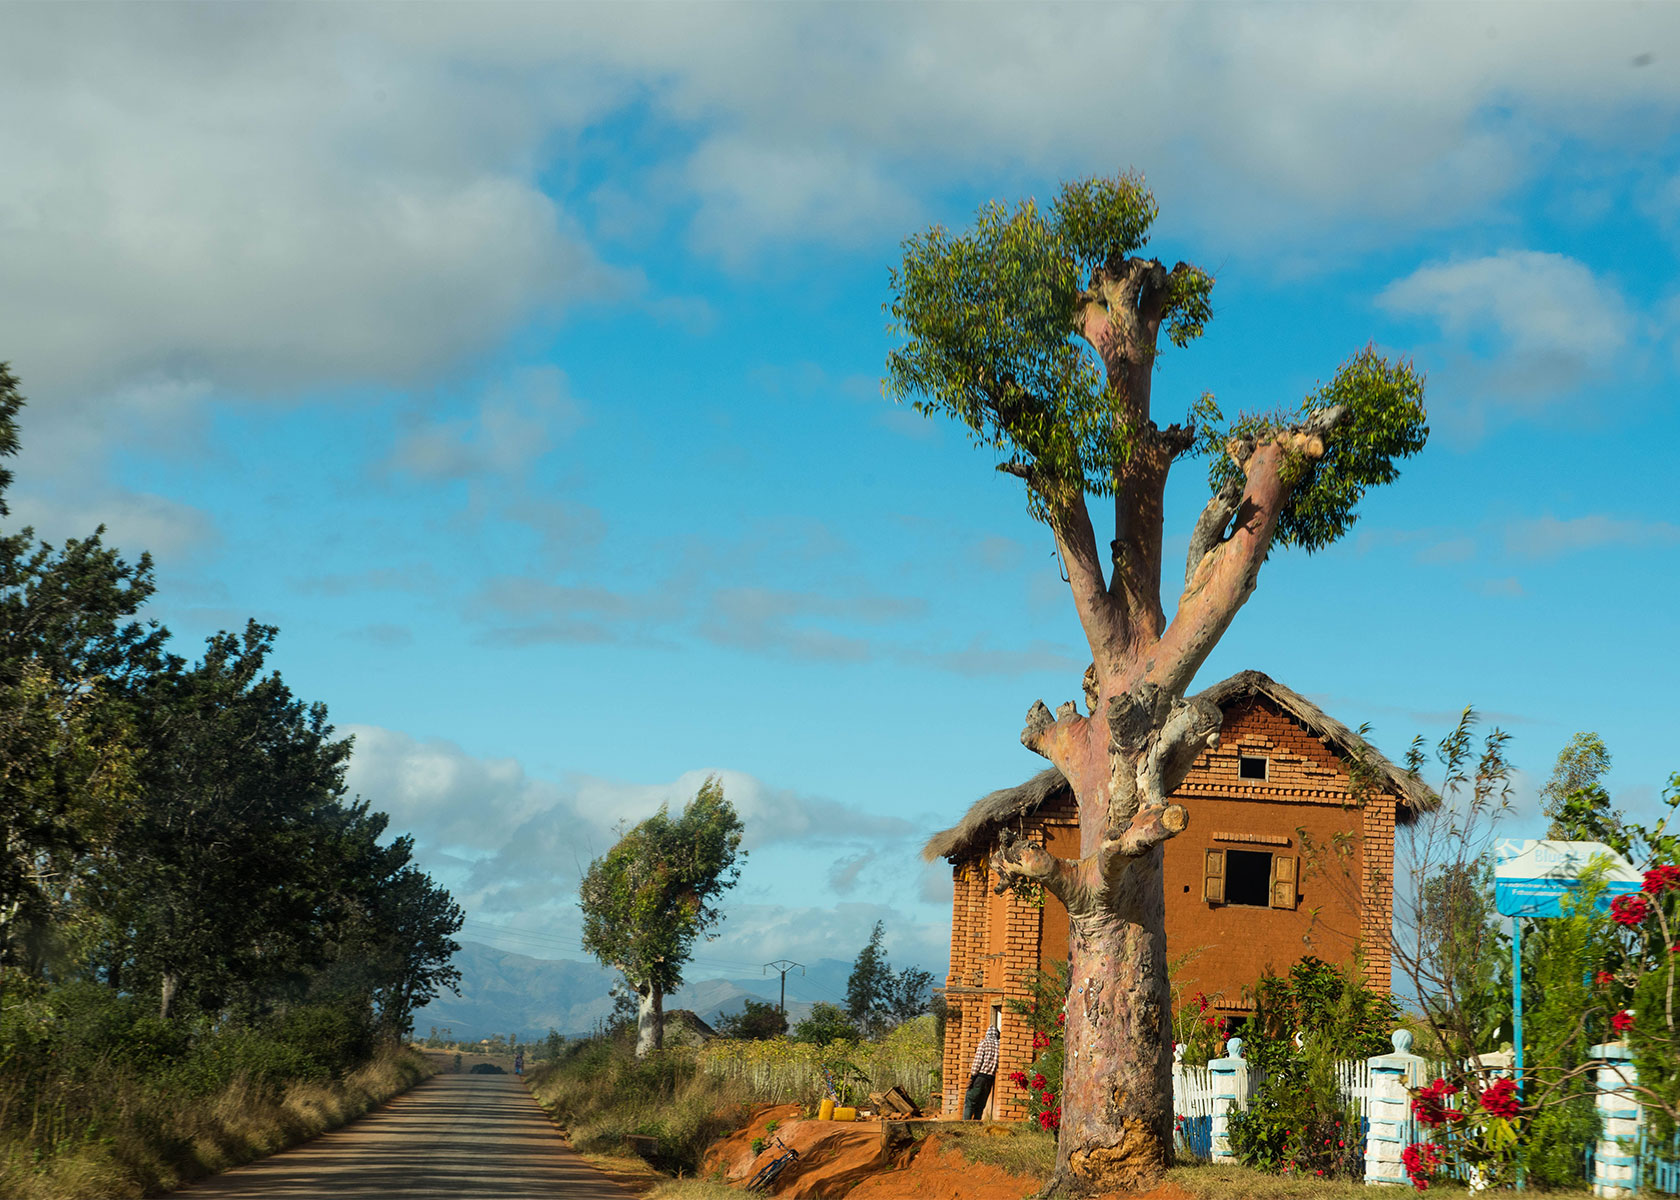 The African countryside, with its open roads and lush vegetation, photographed by Deborah Ross.